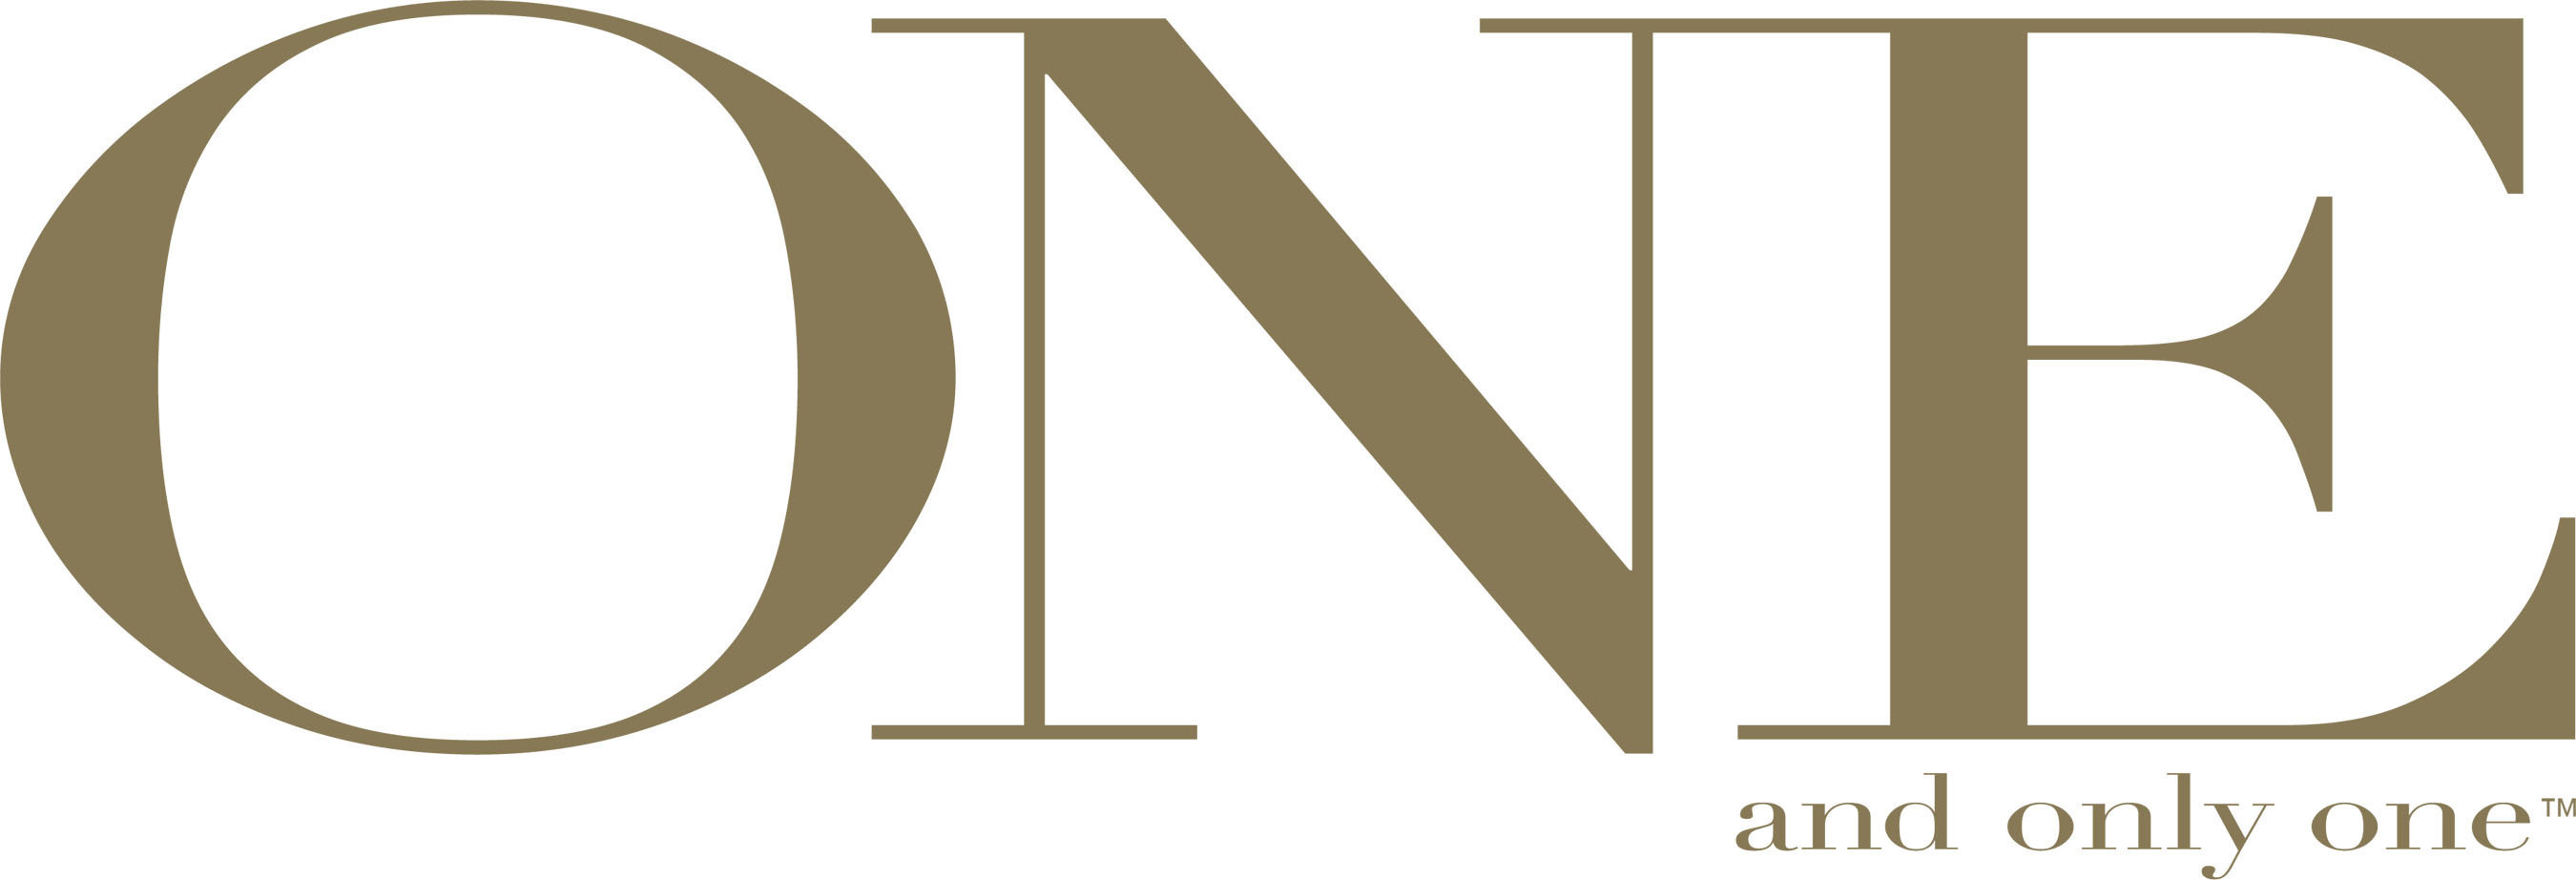 The One and Only One Logo